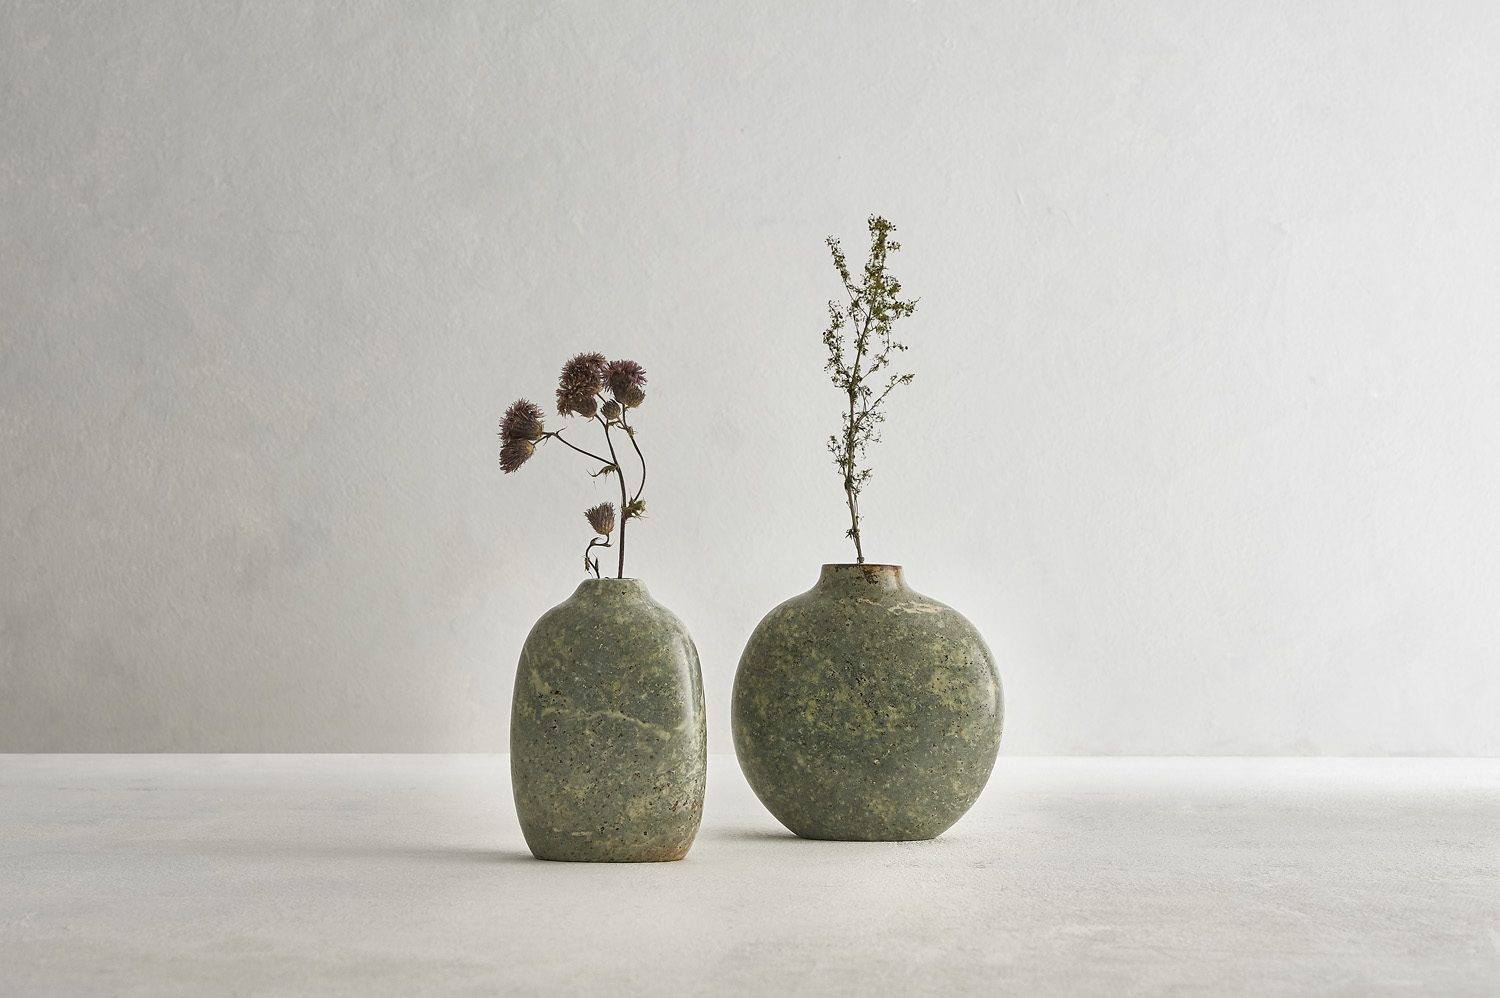 A still life photograph of stone sculpture vessels